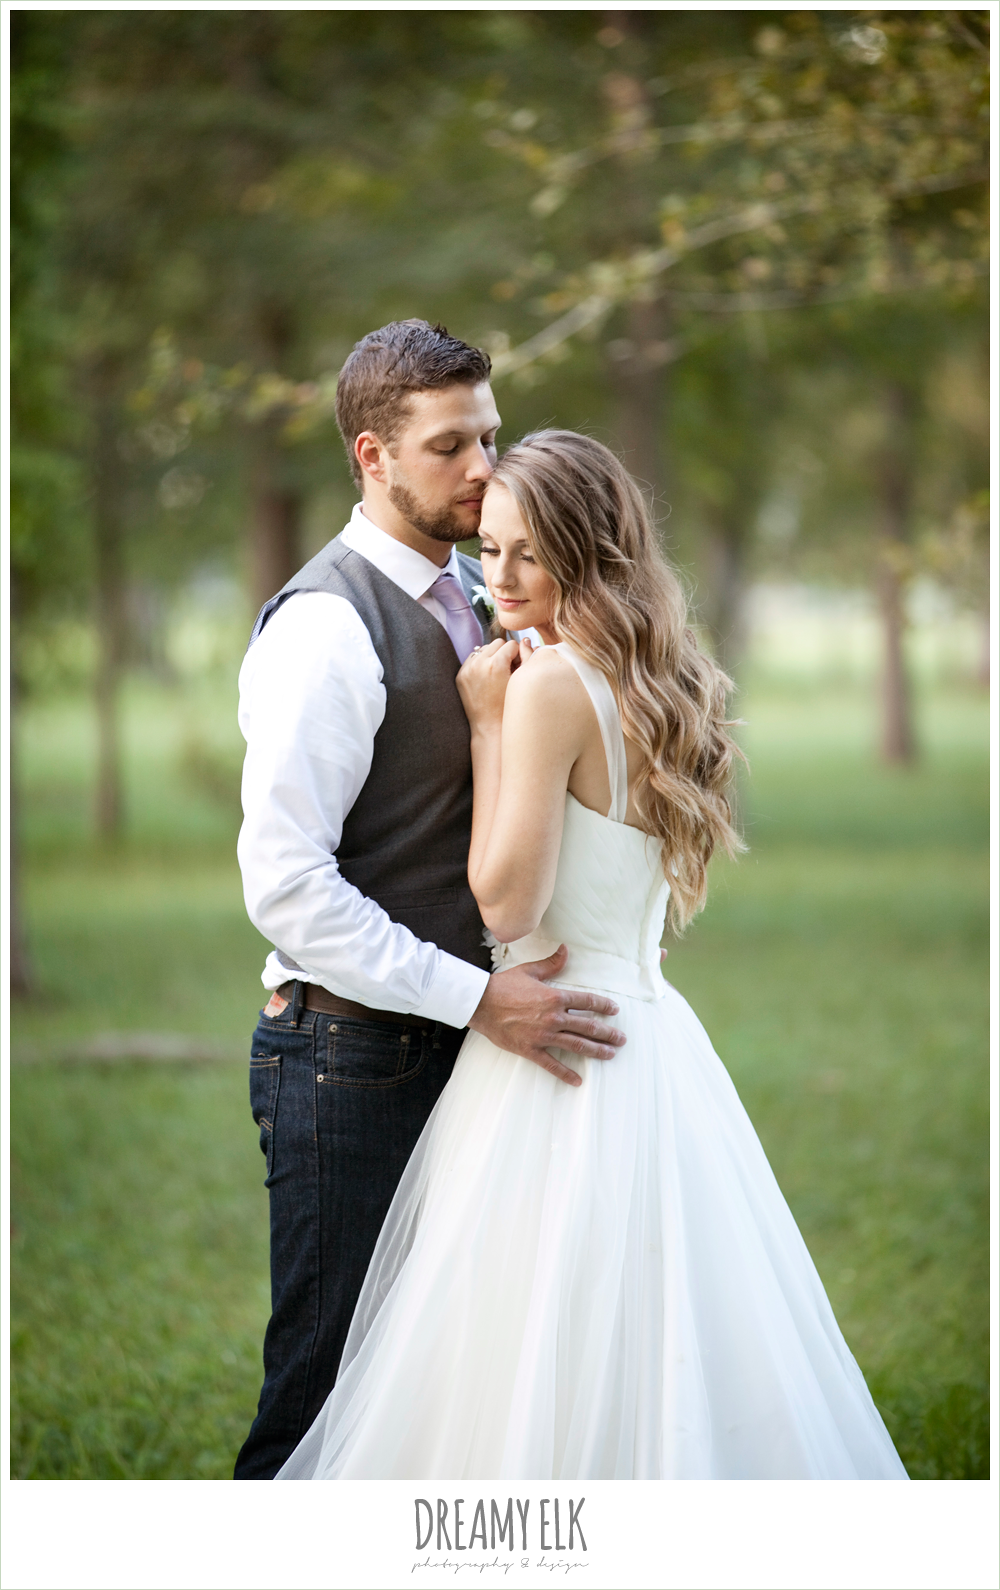 ashley & jordan, the wedding photo contest